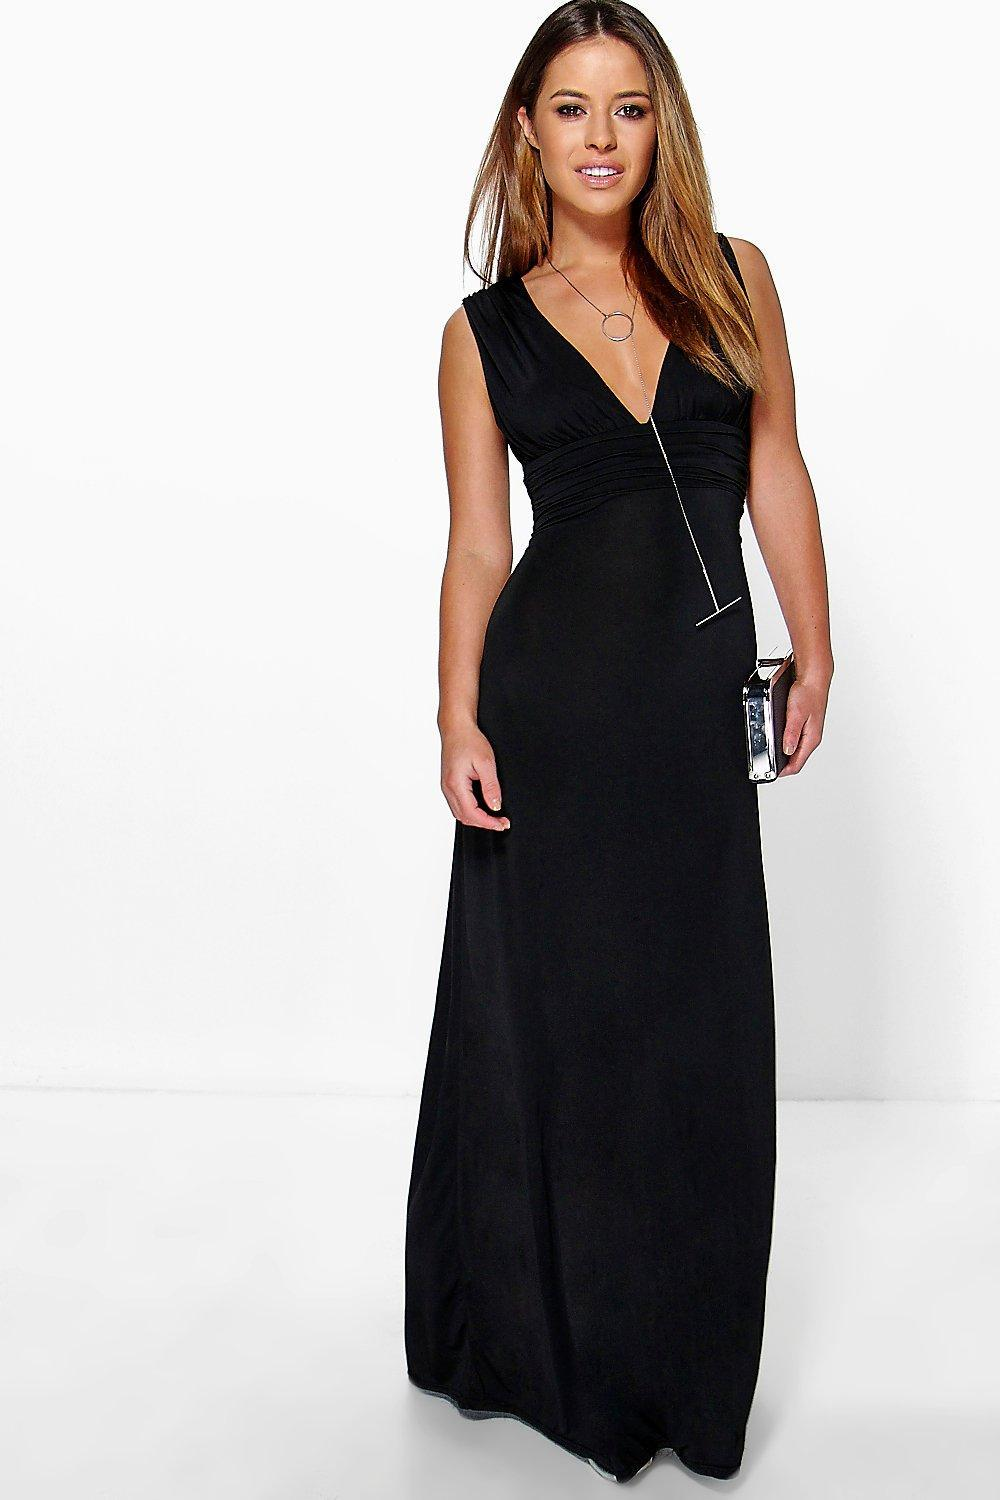 85d8057d551d9 Lyst - Boohoo Petite Plunge Ruched Maxi Dress in Black